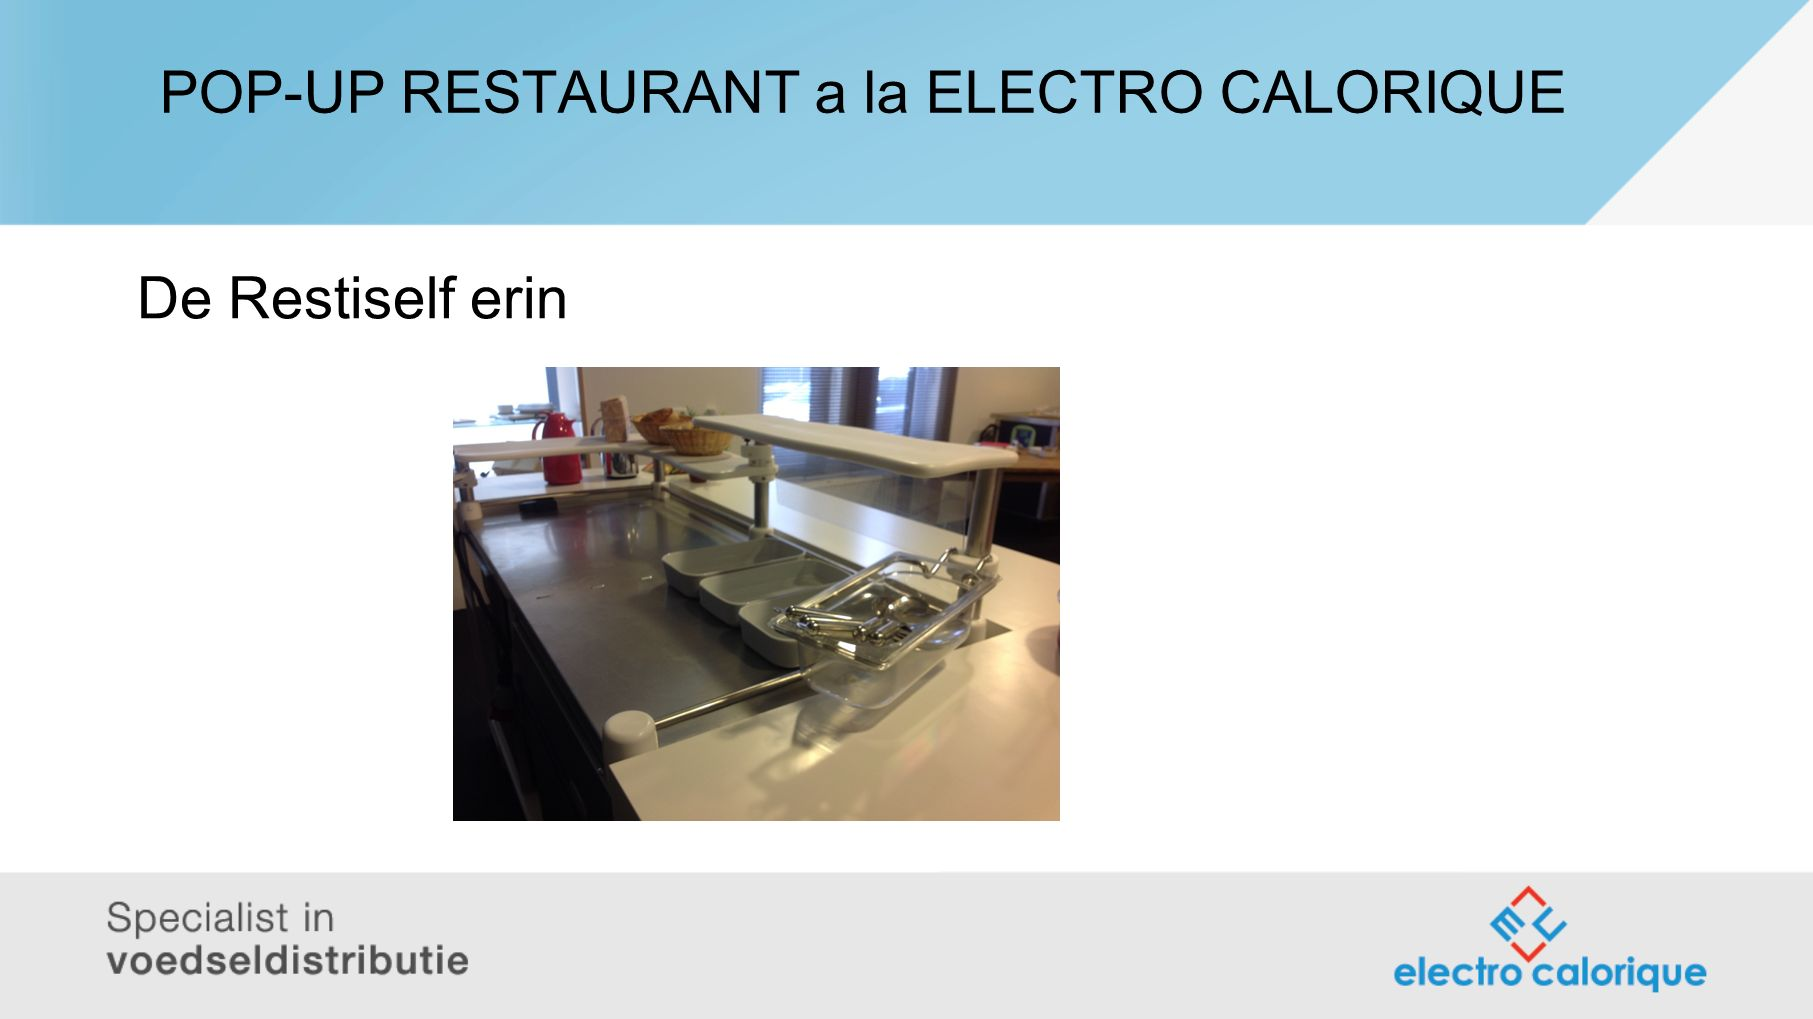 POP-UP RESTAURANT a la ELECTRO CALORIQUE De Restiself erin